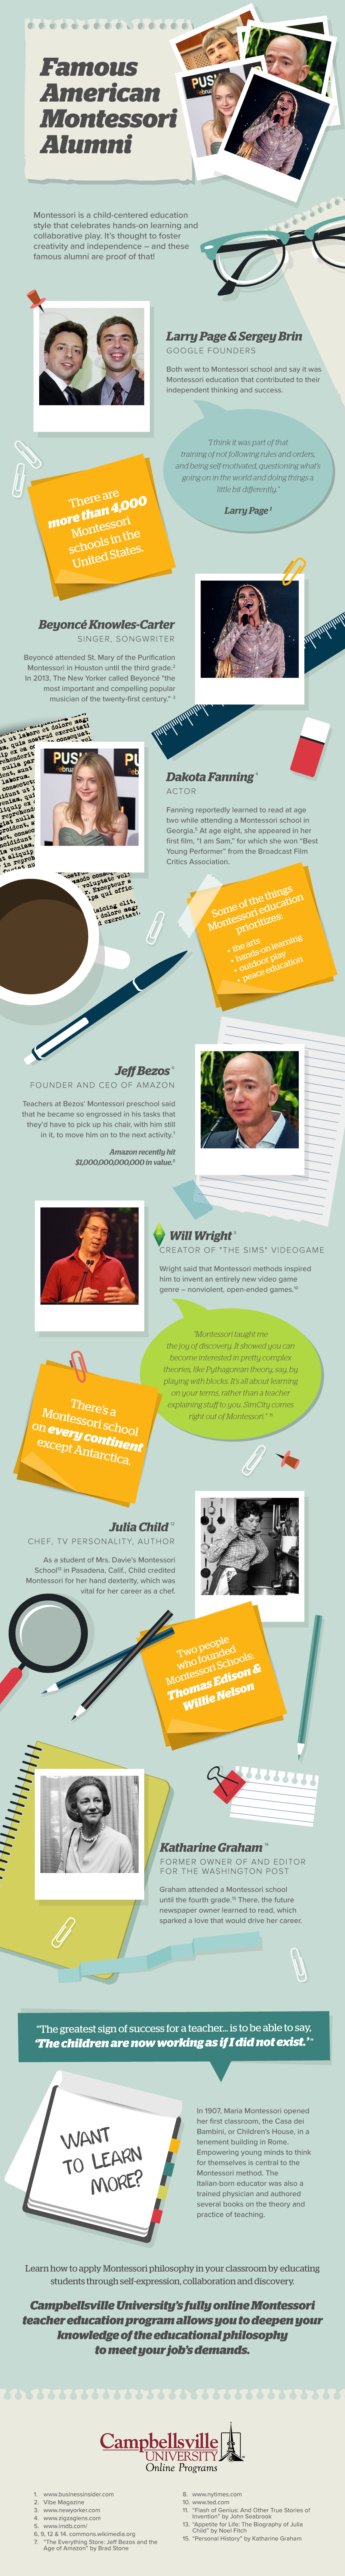 Illustrated infographic with facts about and actual photos of famous graduates of Montessori schools.